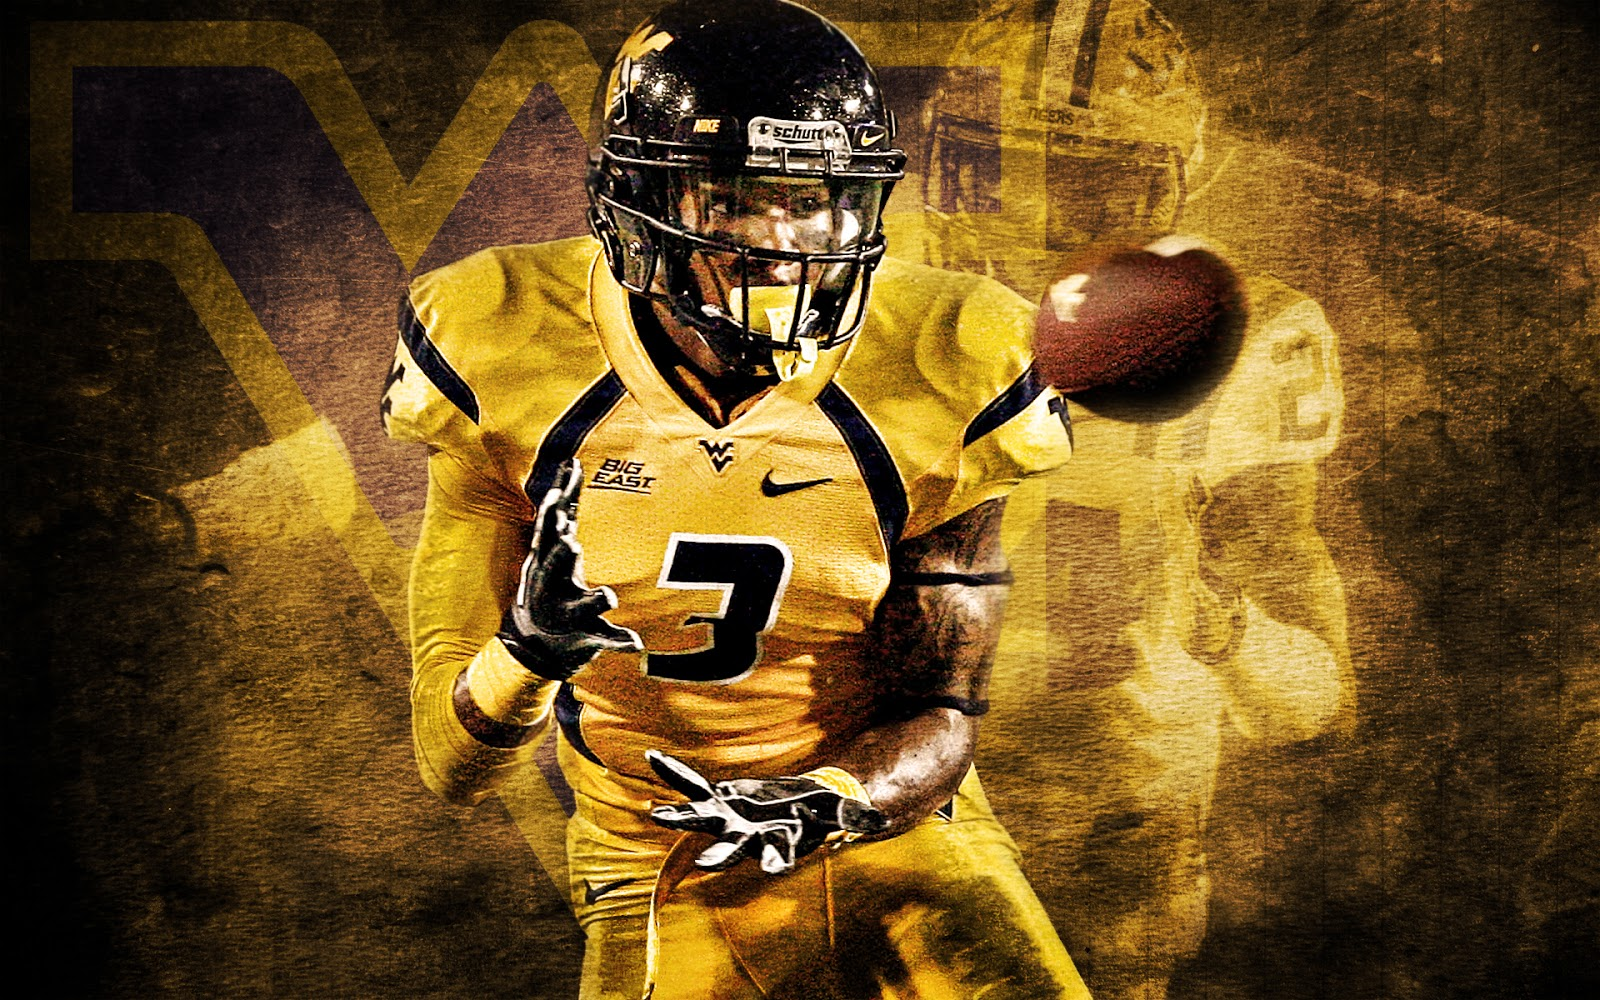 You Can Also Find The Latest Images Of Wvu Football Wallpaper In Gallery Below